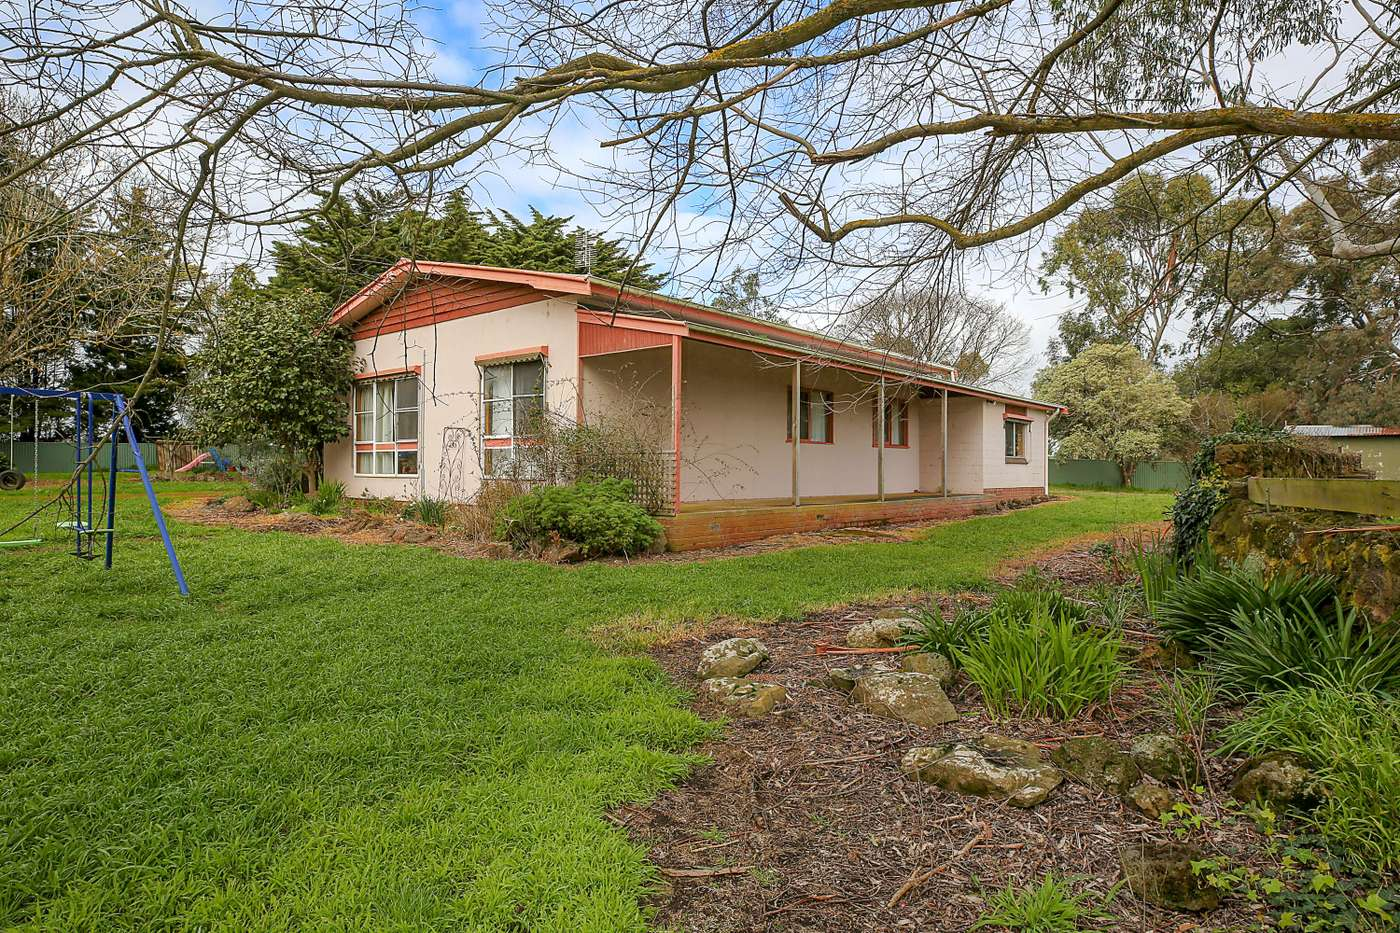 Main view of Homely house listing, Lot 2 5031 Princes Highway, Camperdown, VIC 3260